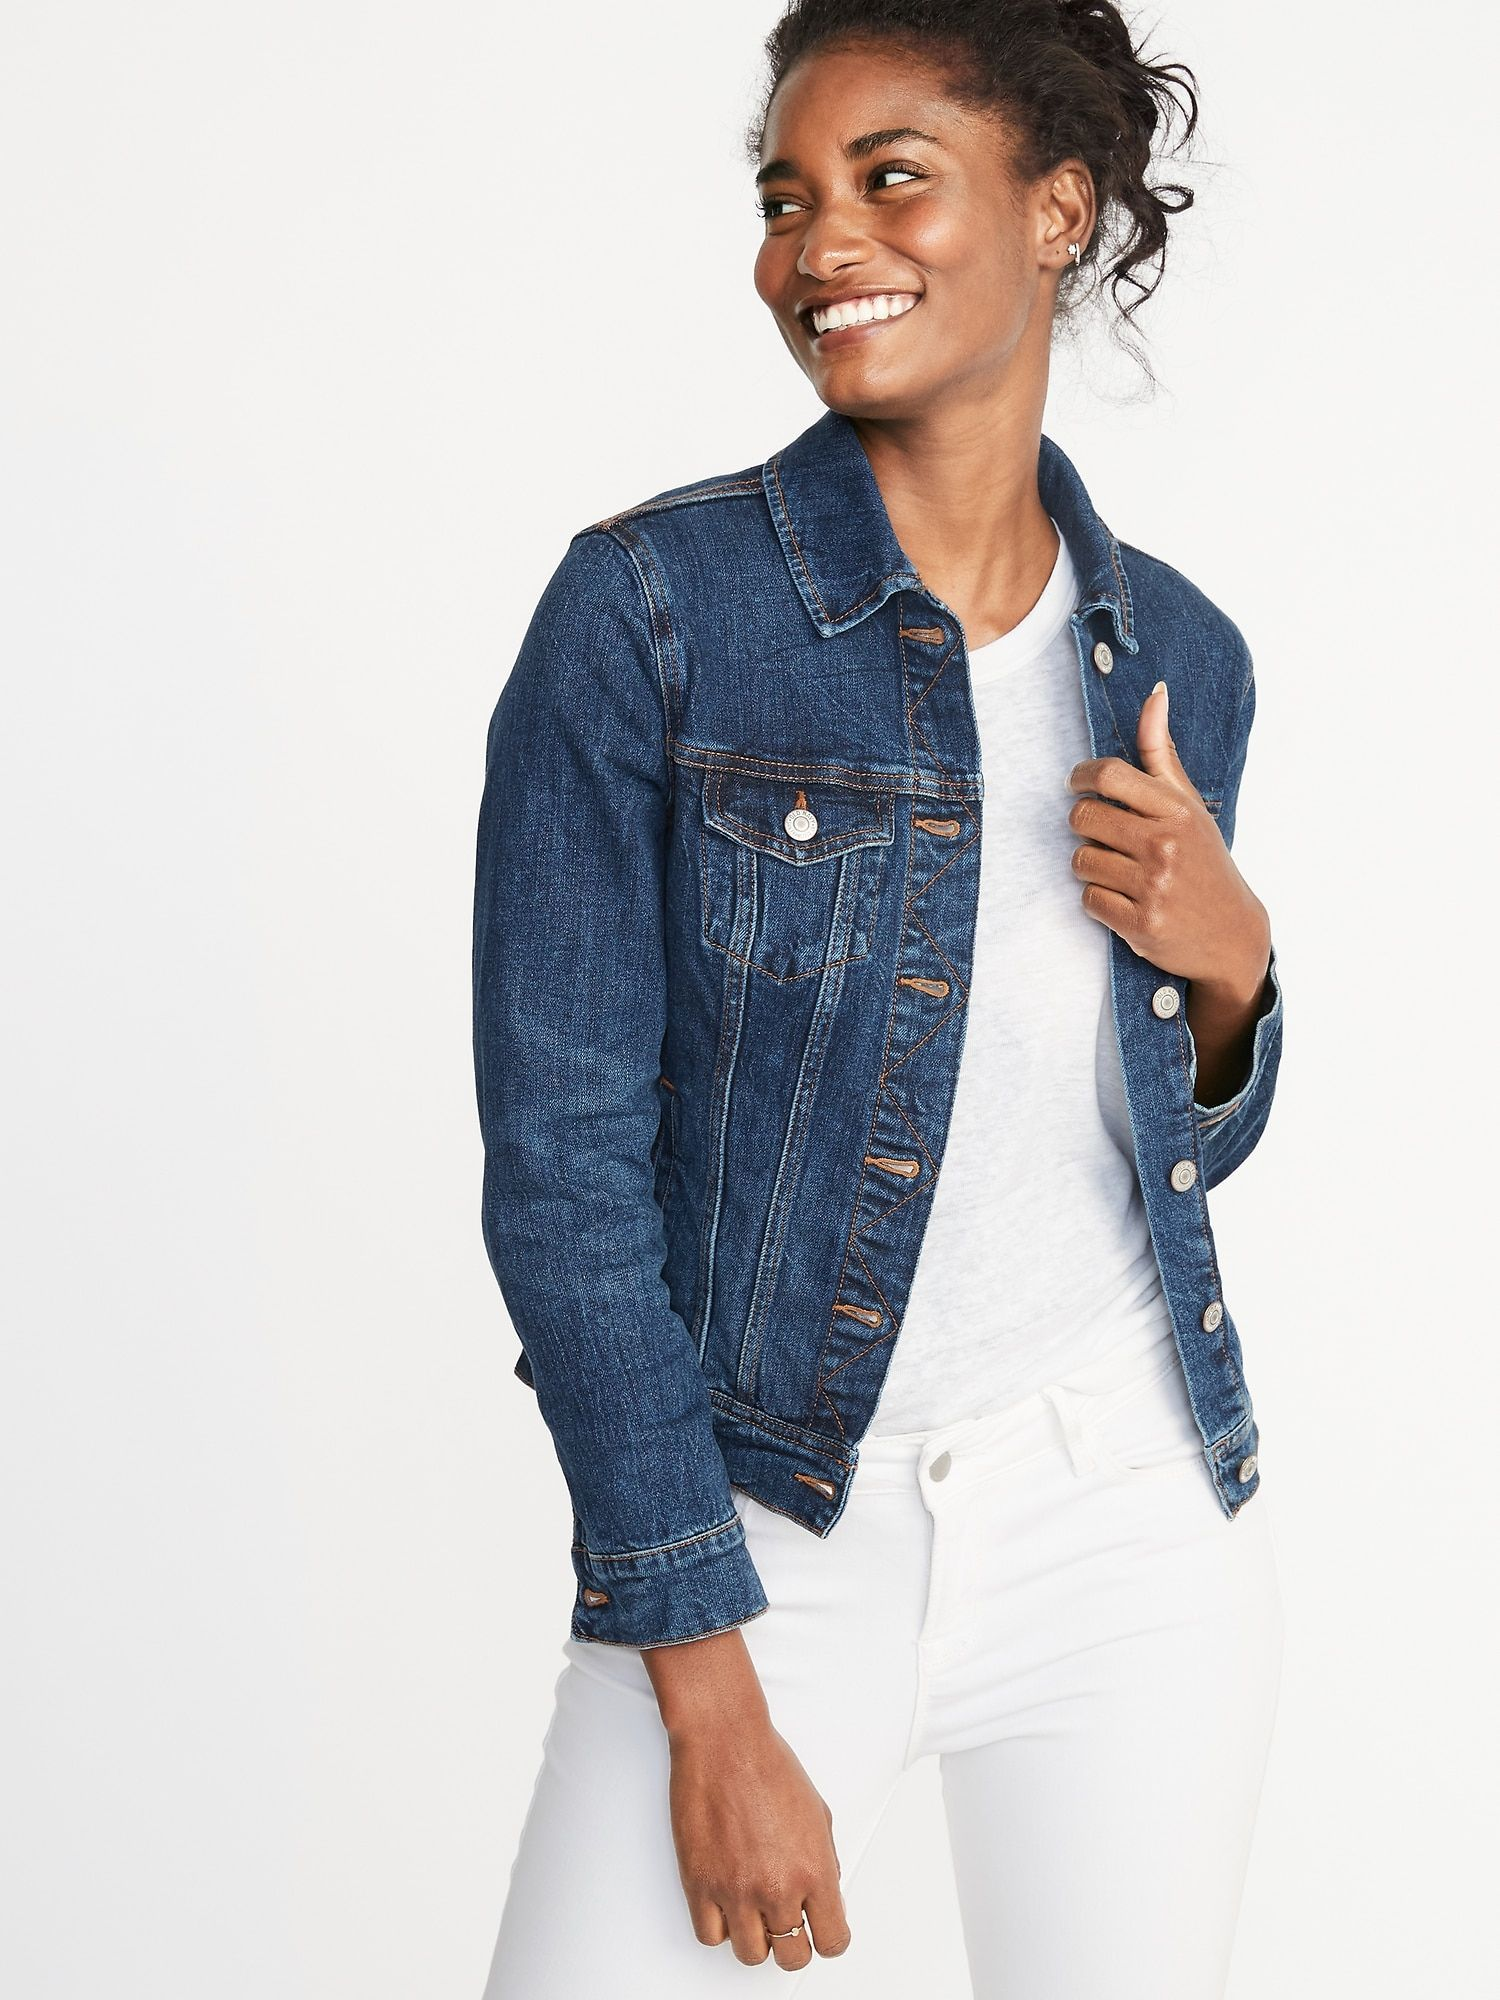 Love This Look For You All White With A Jean Jacket Is Great Bring A Sweater Solid Color That You Can Tie In 2021 Jackets For Women Denim Jacket Women Denim Jacket [ 2000 x 1500 Pixel ]